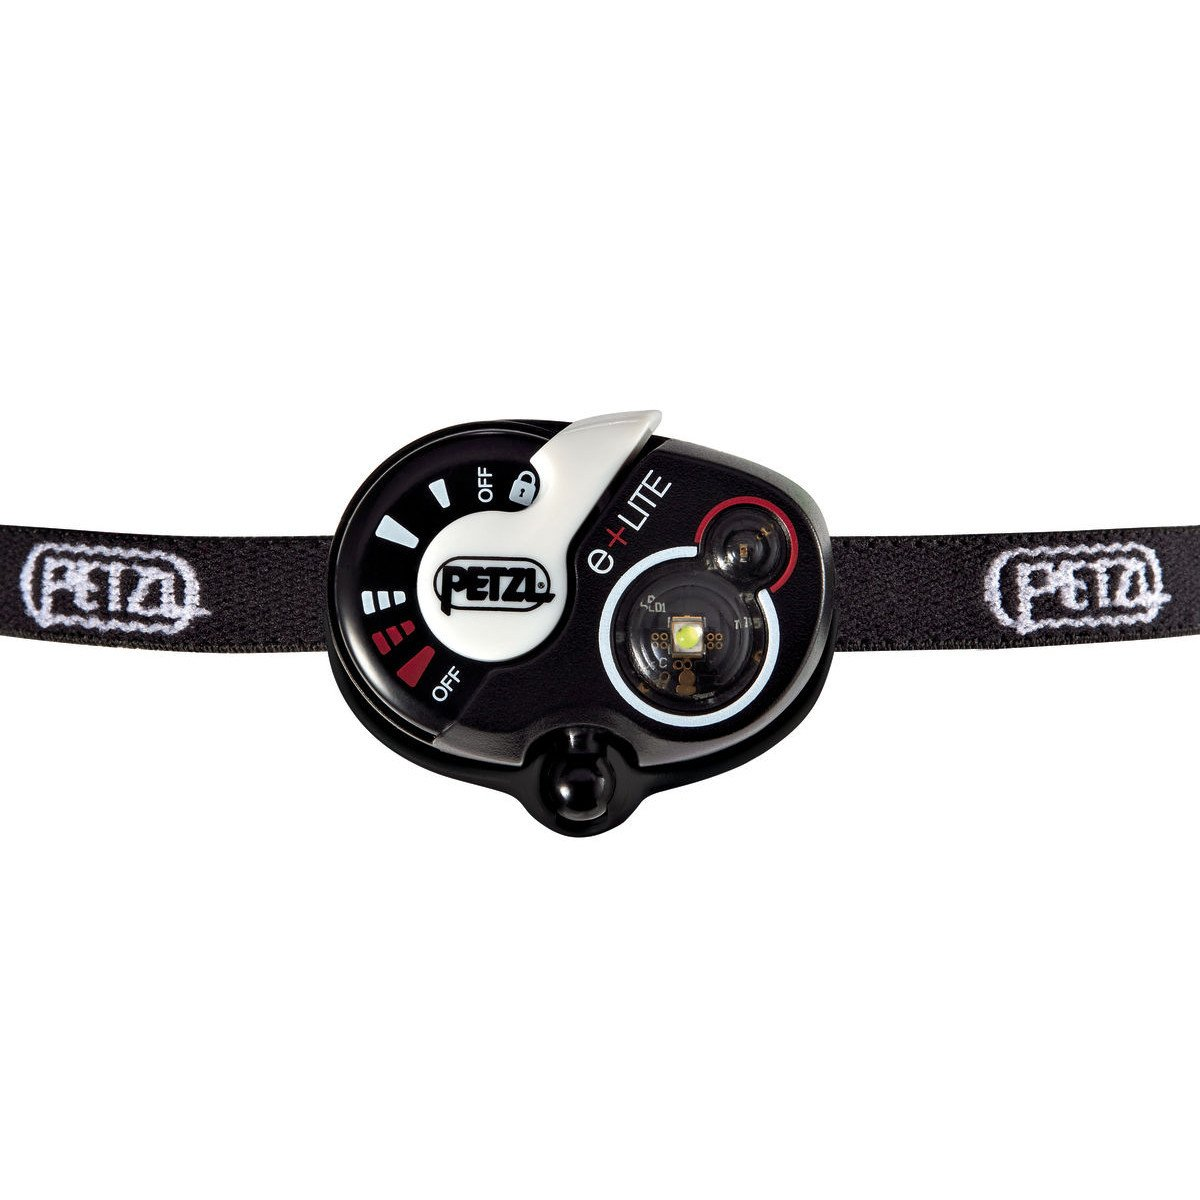 Petzl e+LITE Head torch, in black colour